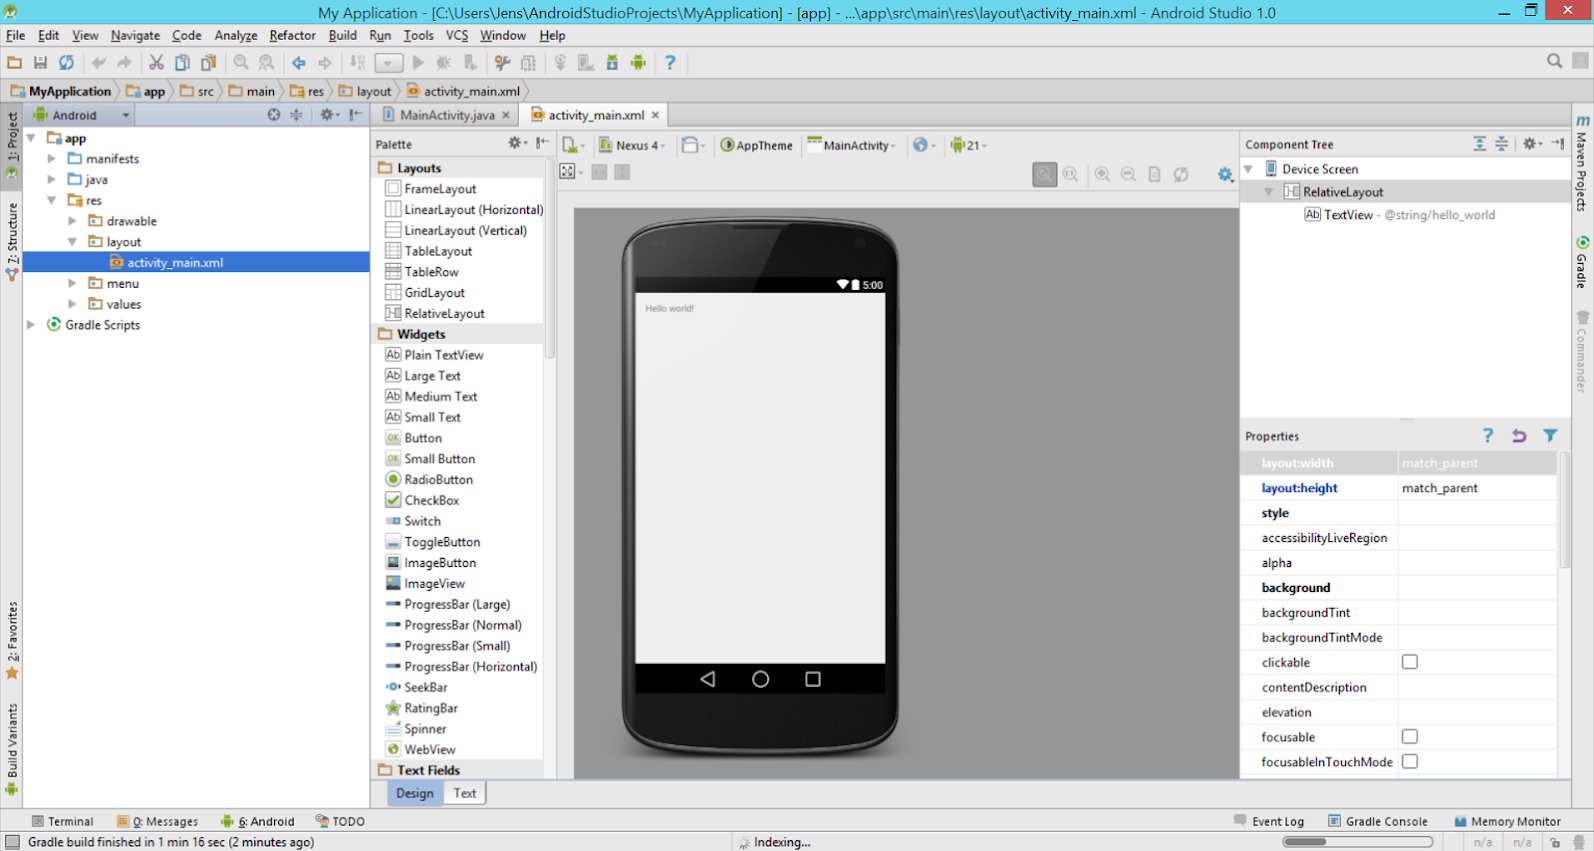 Android Studio 1.0